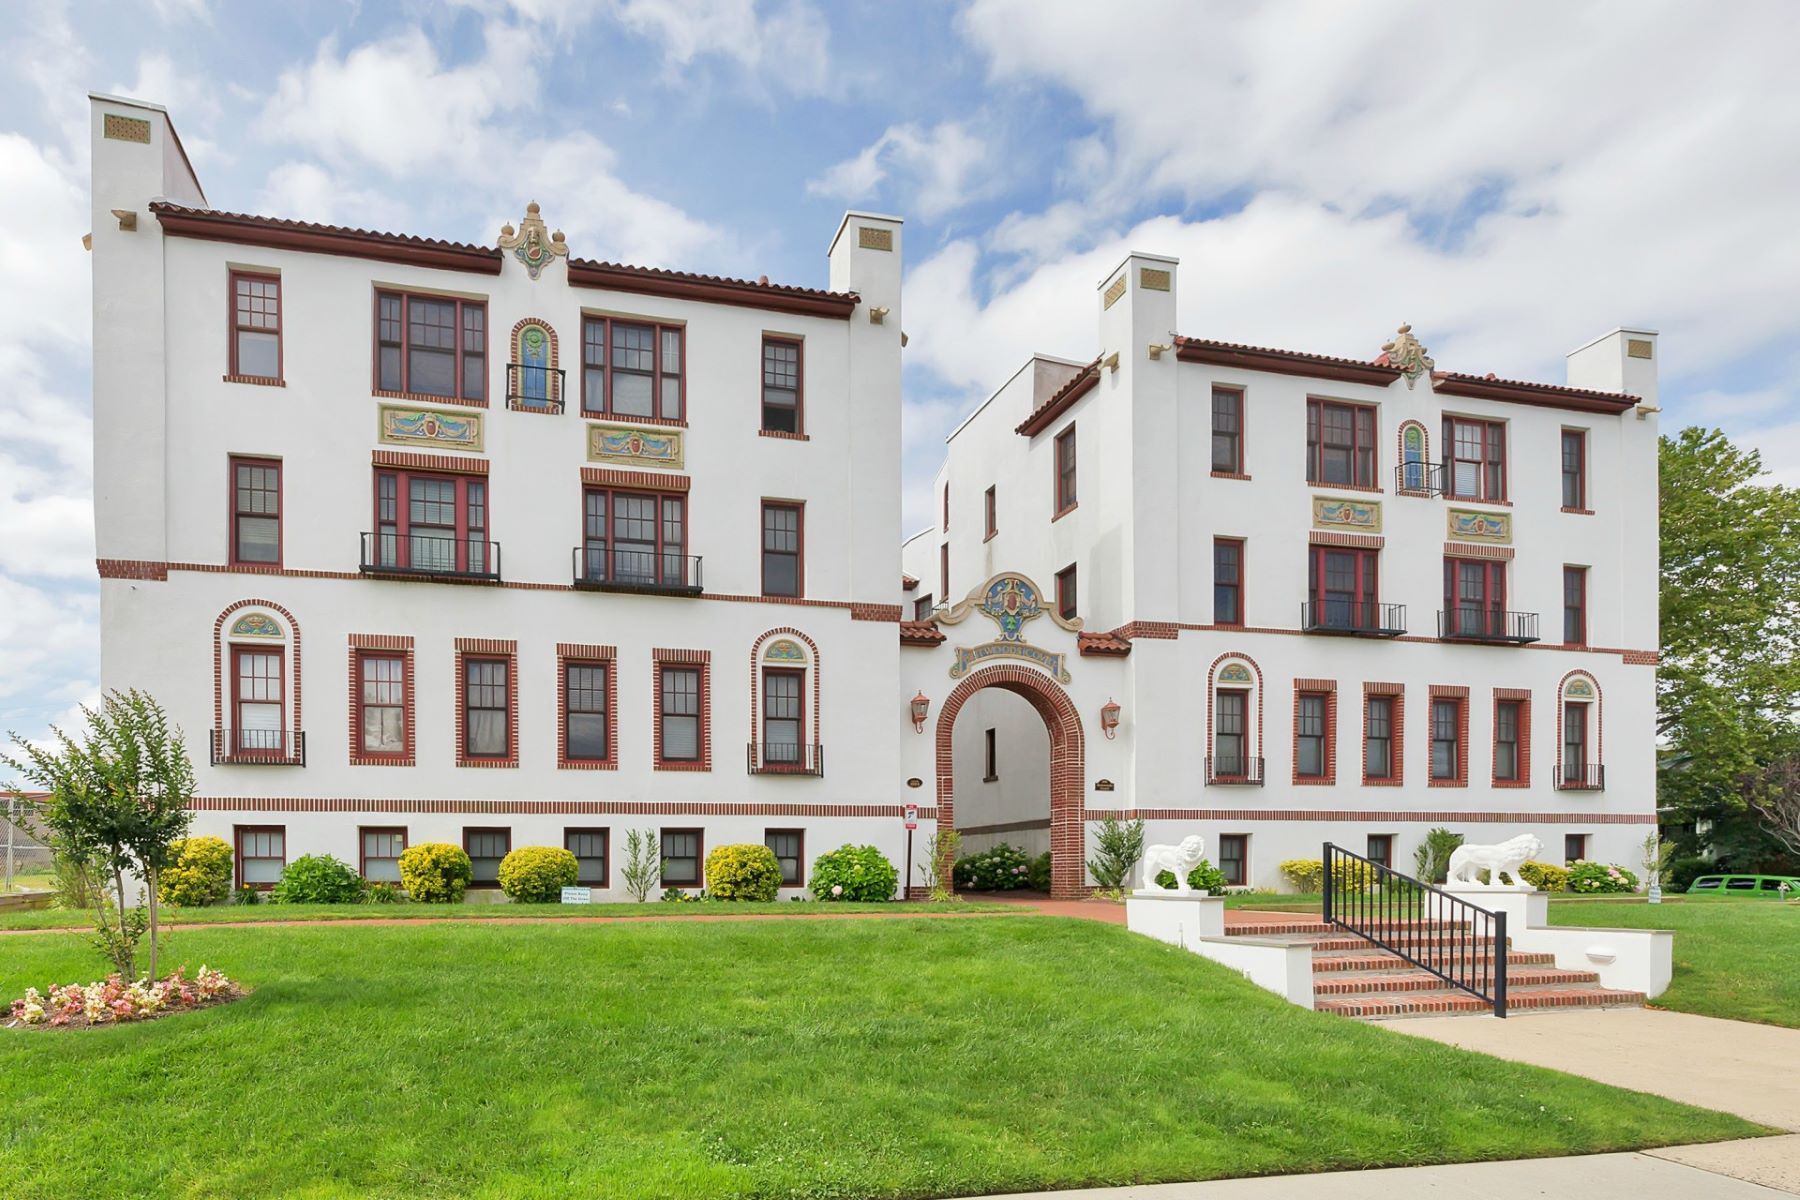 Condominiums for Sale at Beautiful Condominium in the Historic Britwood 218 2nd Ave 103W Asbury Park, New Jersey 07712 United States